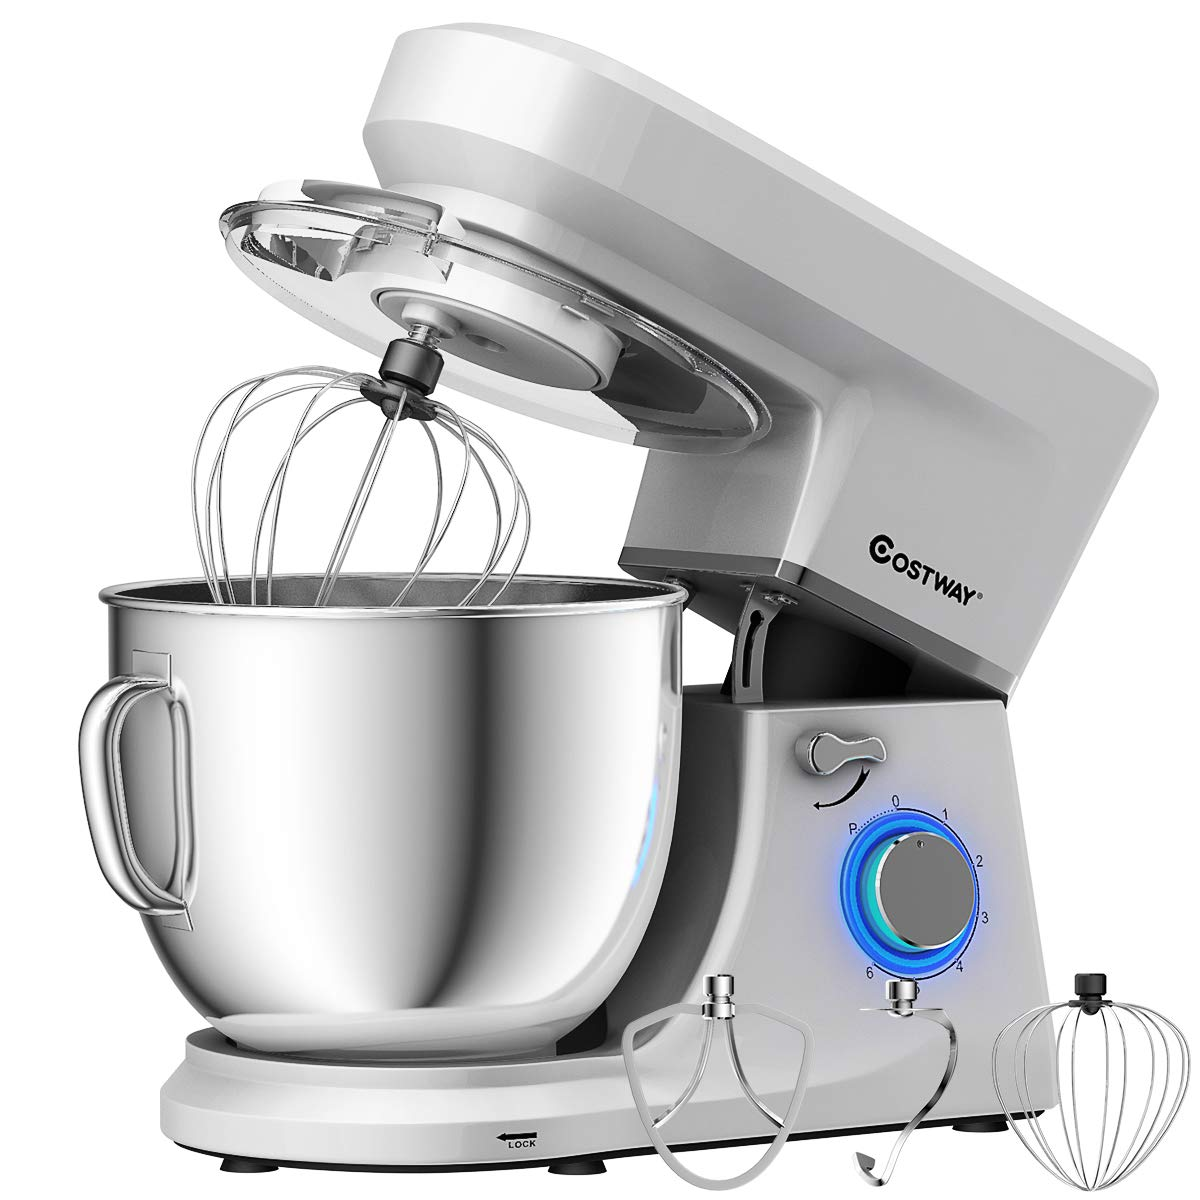 COSTWAY Stand Mixer, 660W Tilt-head Electric Kitchen Food Mixer with 6-Speed Control, 7.5-Quart Stainless Steel Bowl, Dough Hook, Beater, Whisk (Sliver-update)